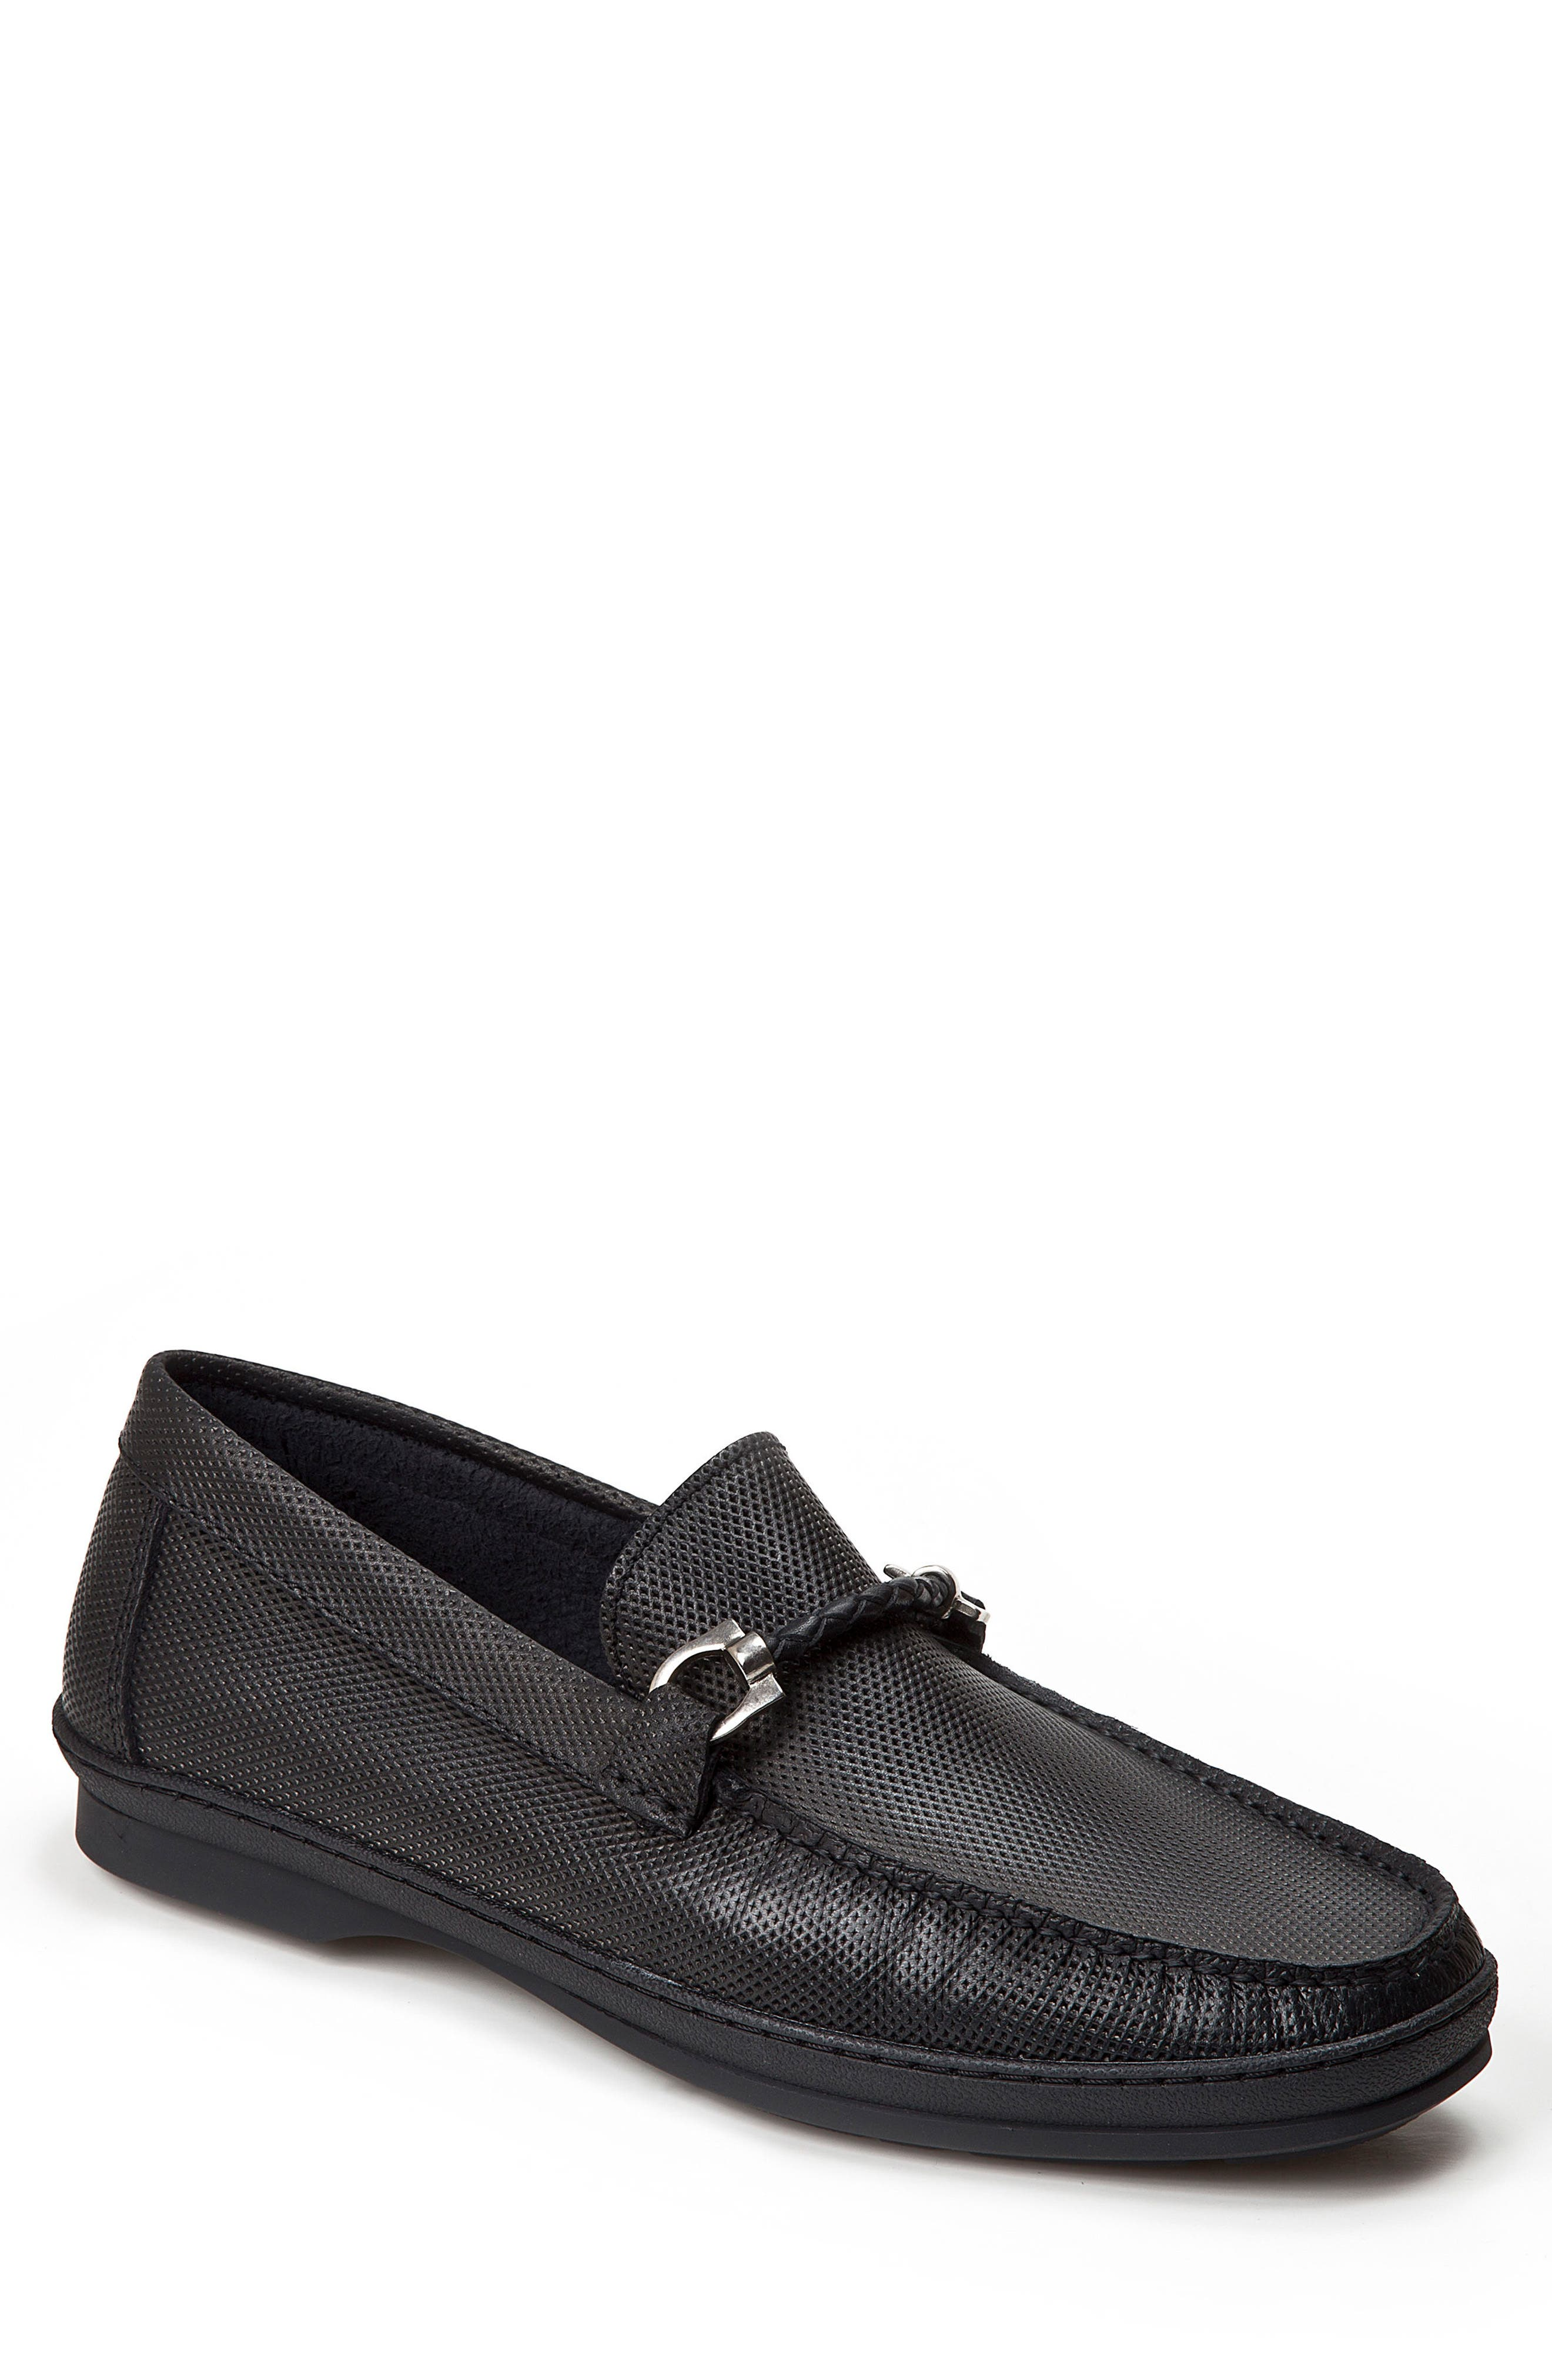 Main Image - Sandro Moscoloni Benito Perforated Moc Toe Loafer (Men)